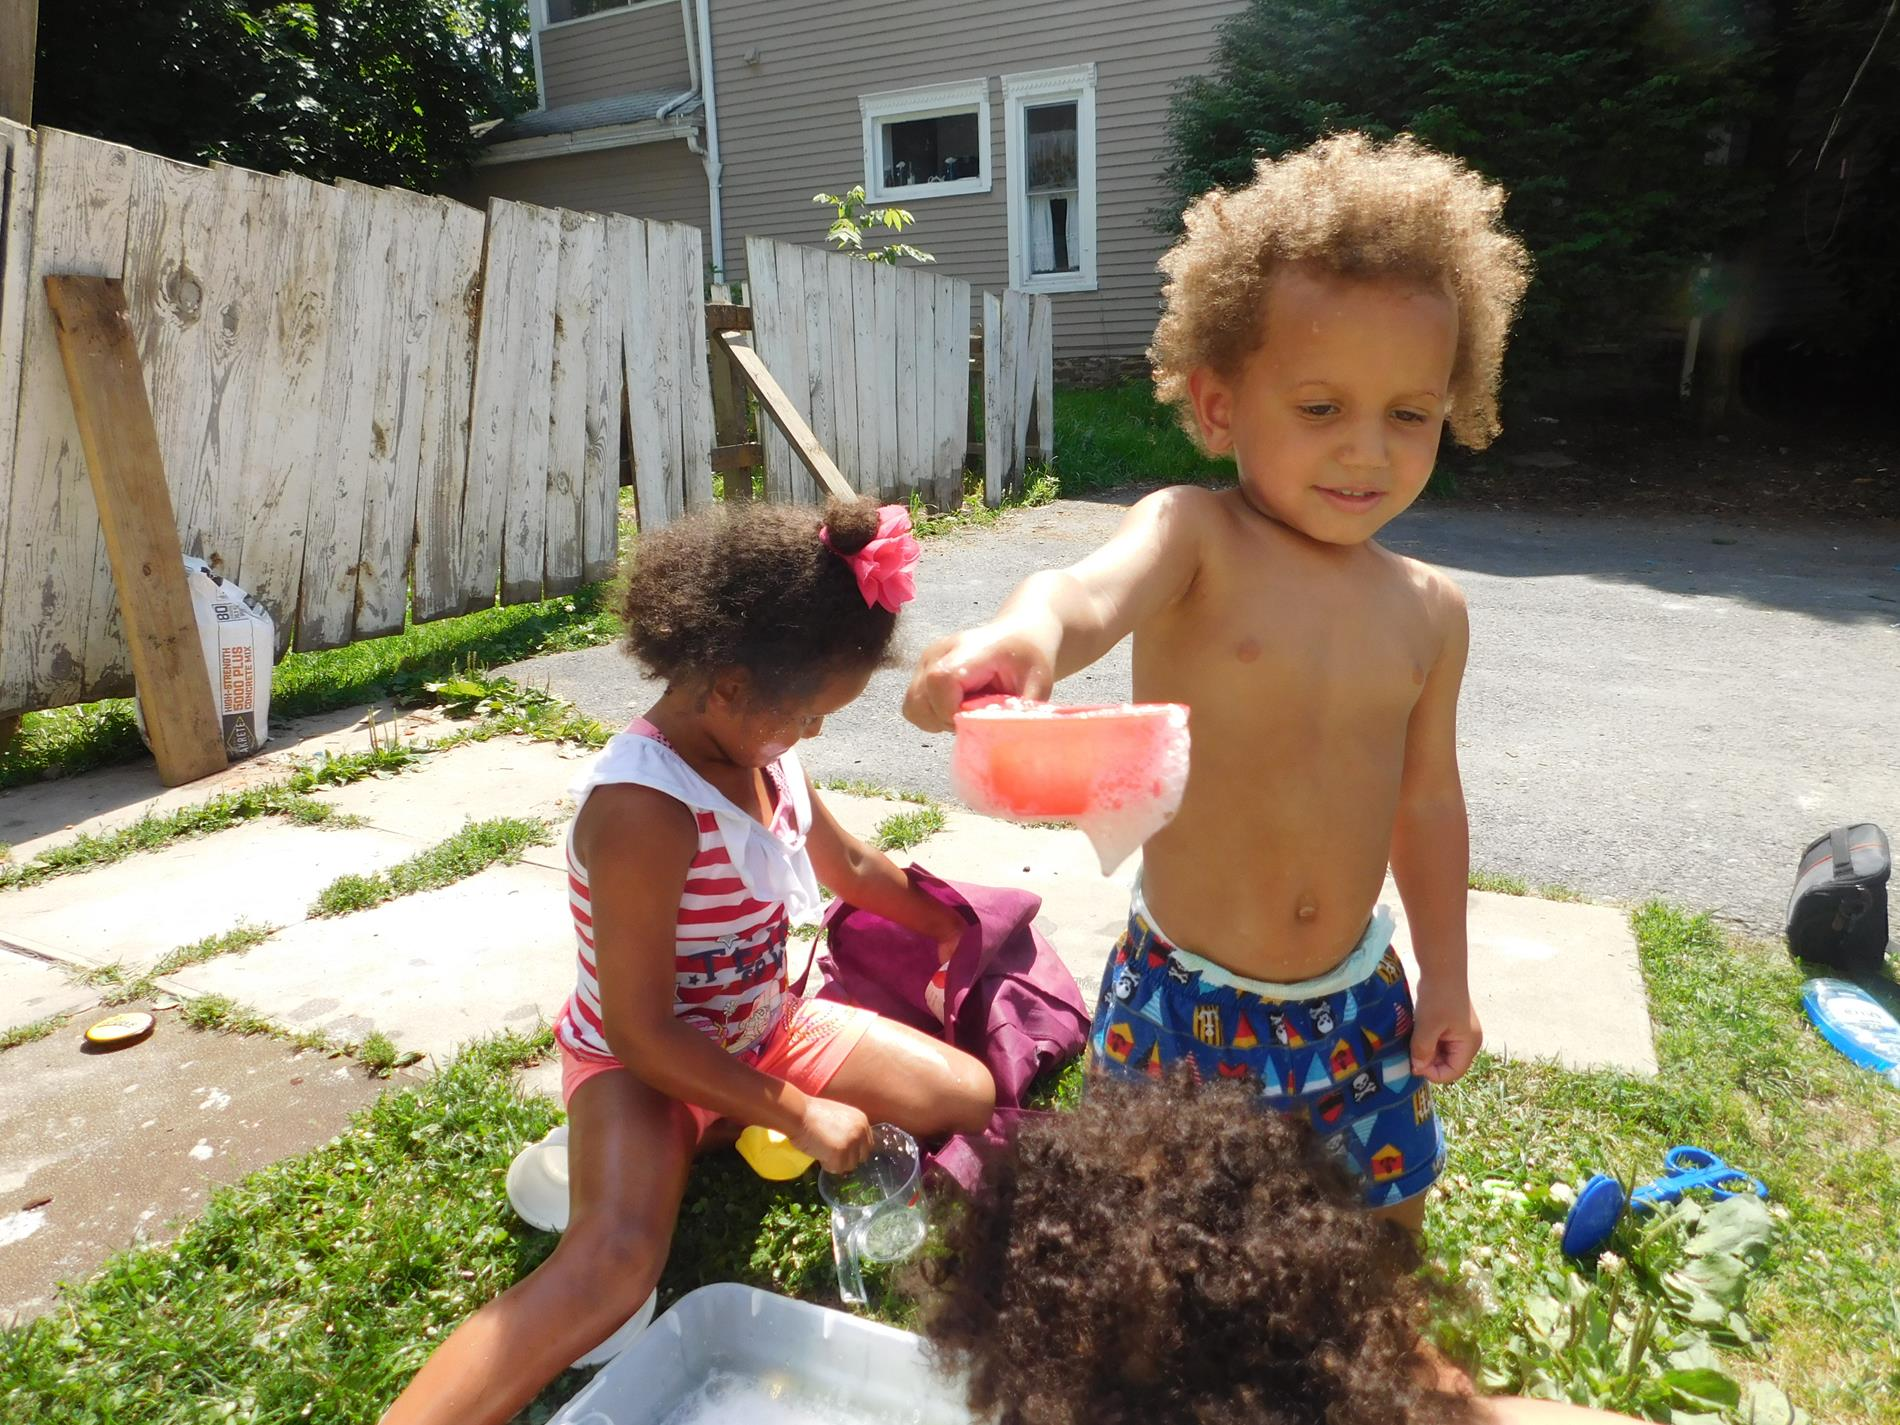 Canton Early Head Start child, Da'Kai uses a net to catch various toys hidden in the water and bubbles while playing with his sisters.